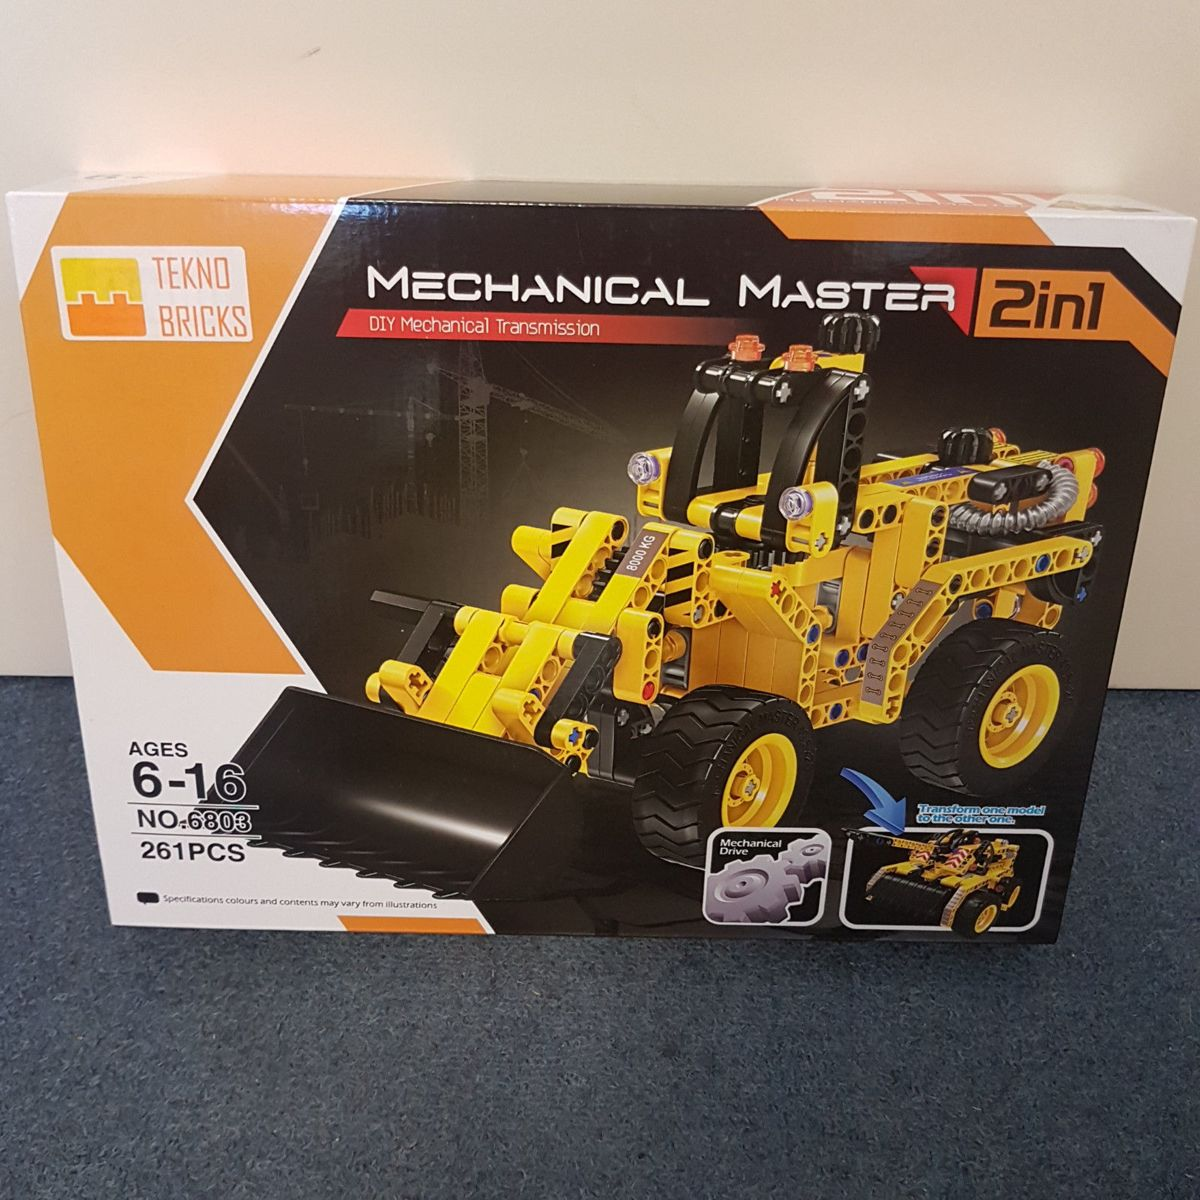 Tekno Bricks - Mechanical Master 2in1 - als Lego